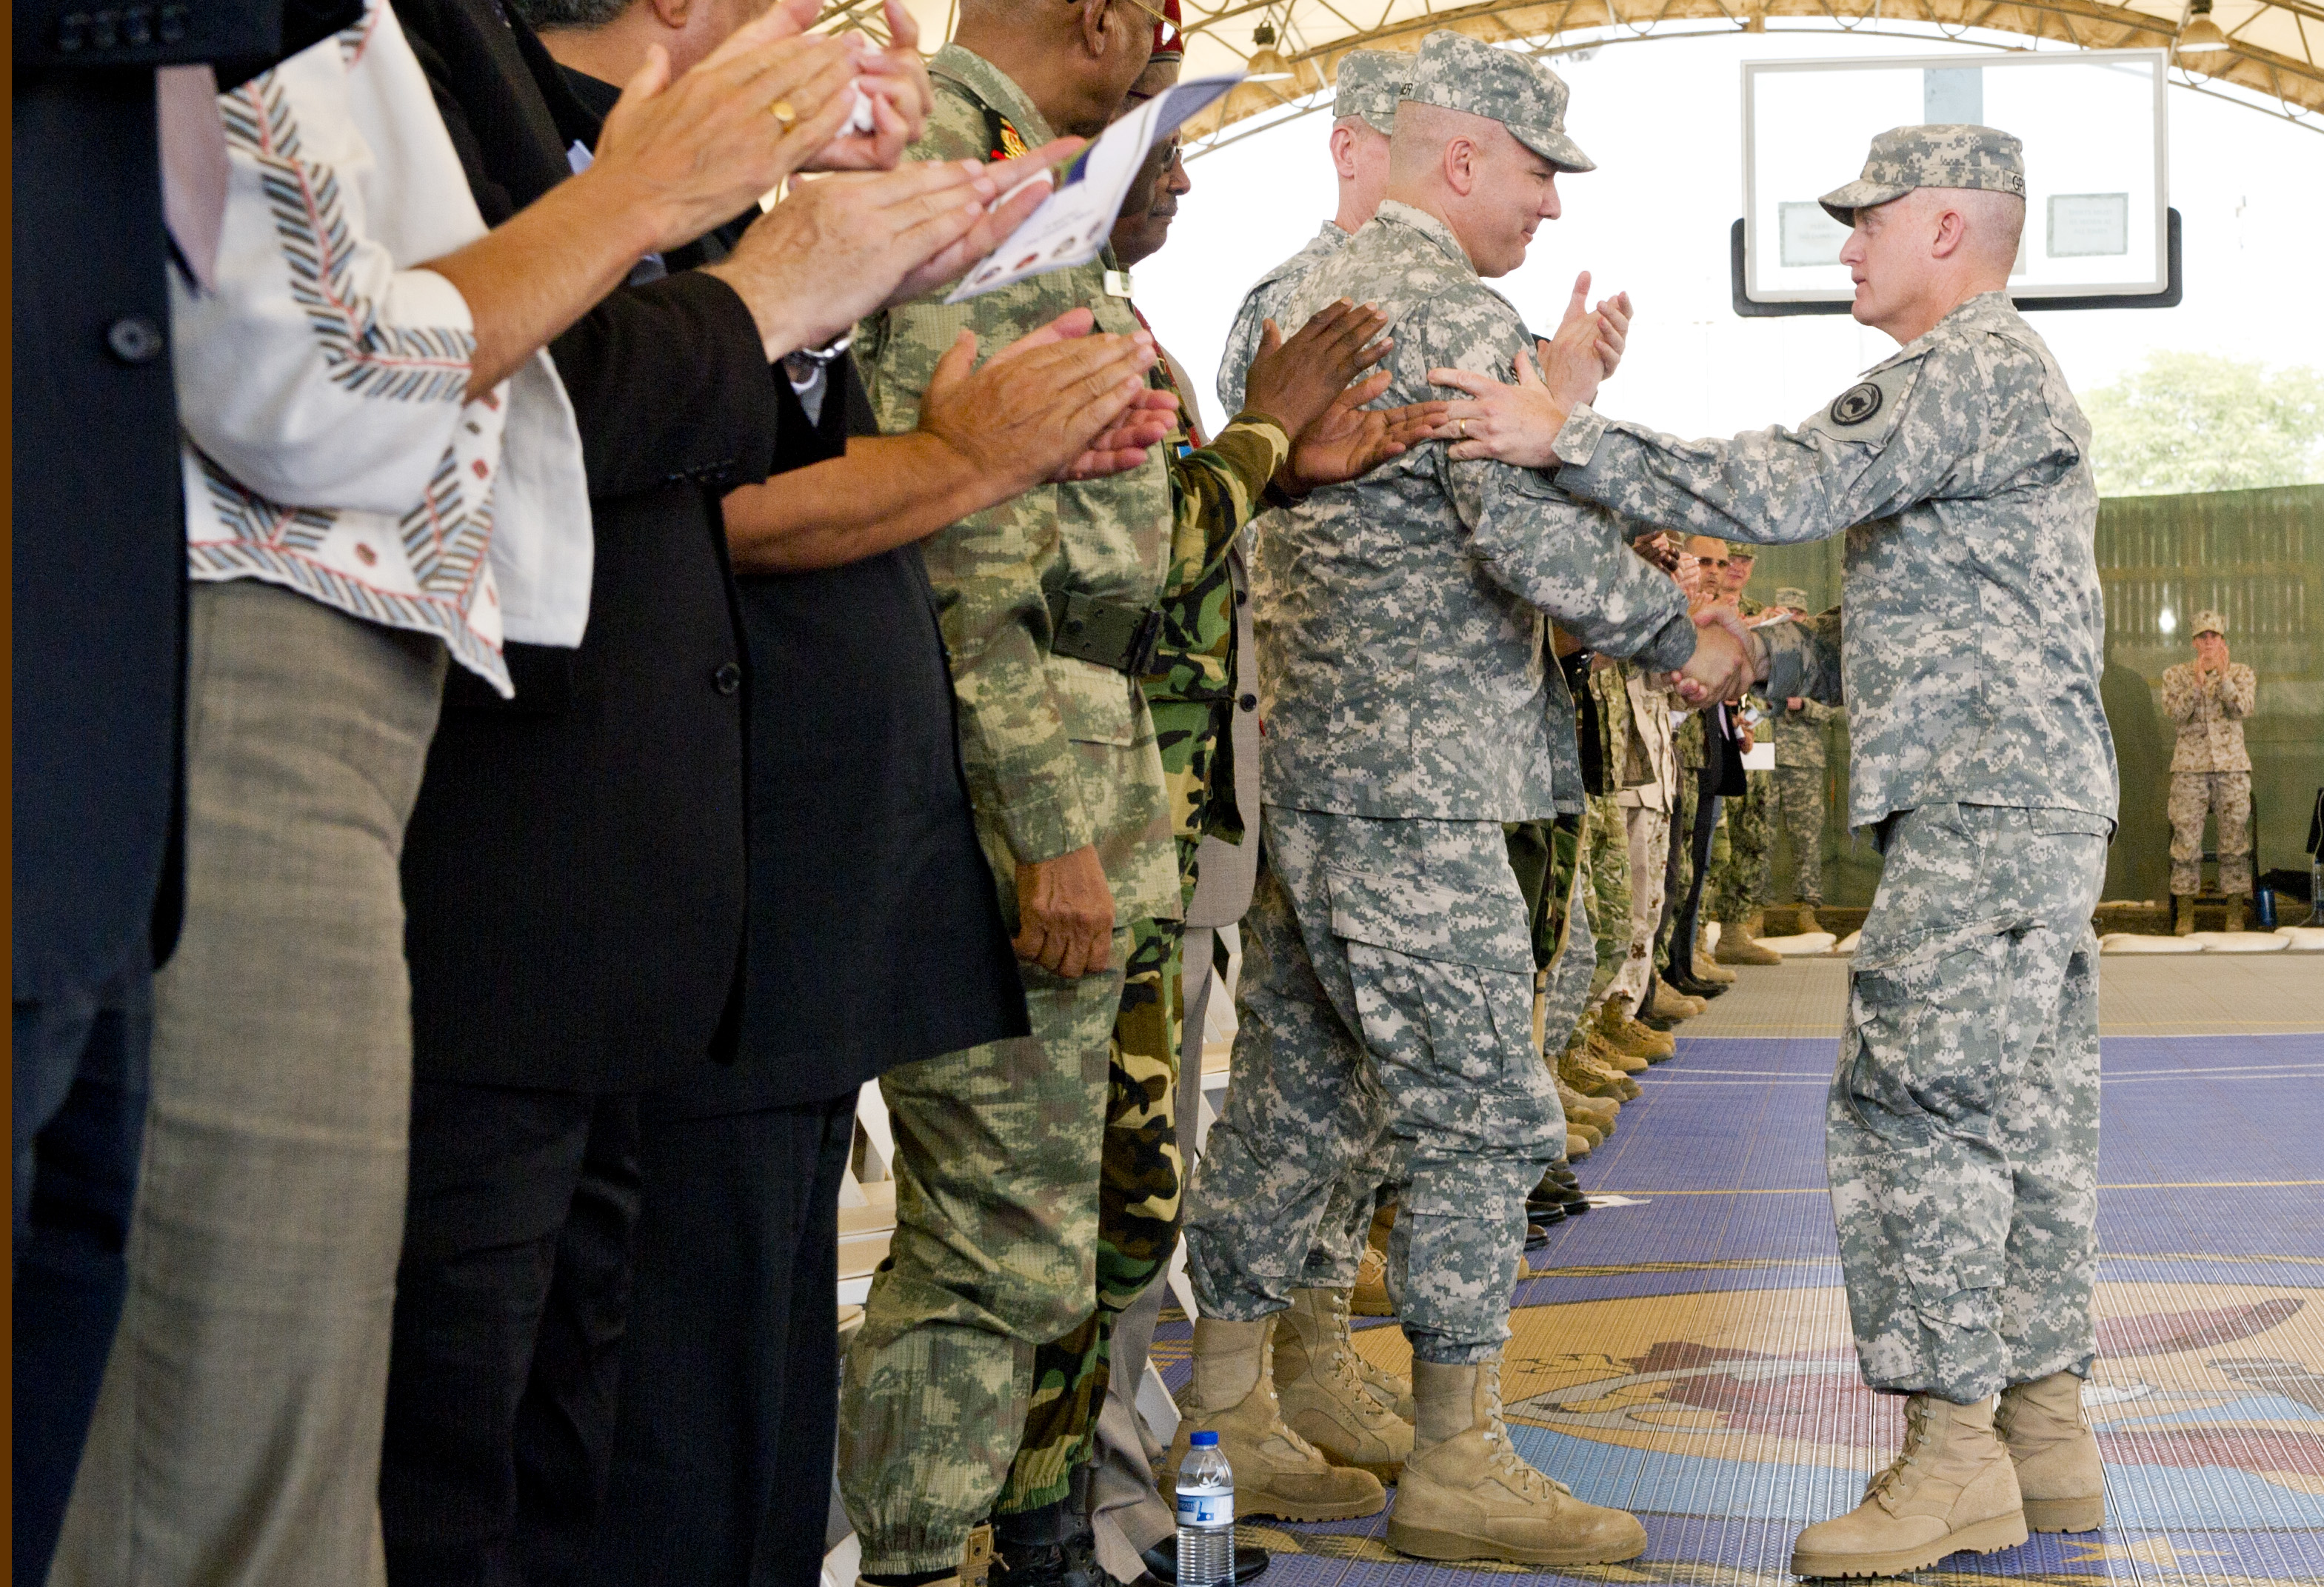 Maj. Gen. Wayne W. Grigsby Jr., the former commander of Combined Joint Task Force Horn of Africa, congratulates Maj. Gen Mark R. Stammer, on becoming the CJTF-HOA commander, during the change of command ceremony, Apr. 14, 2015. (U.S. Air Force photo by Technical Sgt. Darrell Dean)